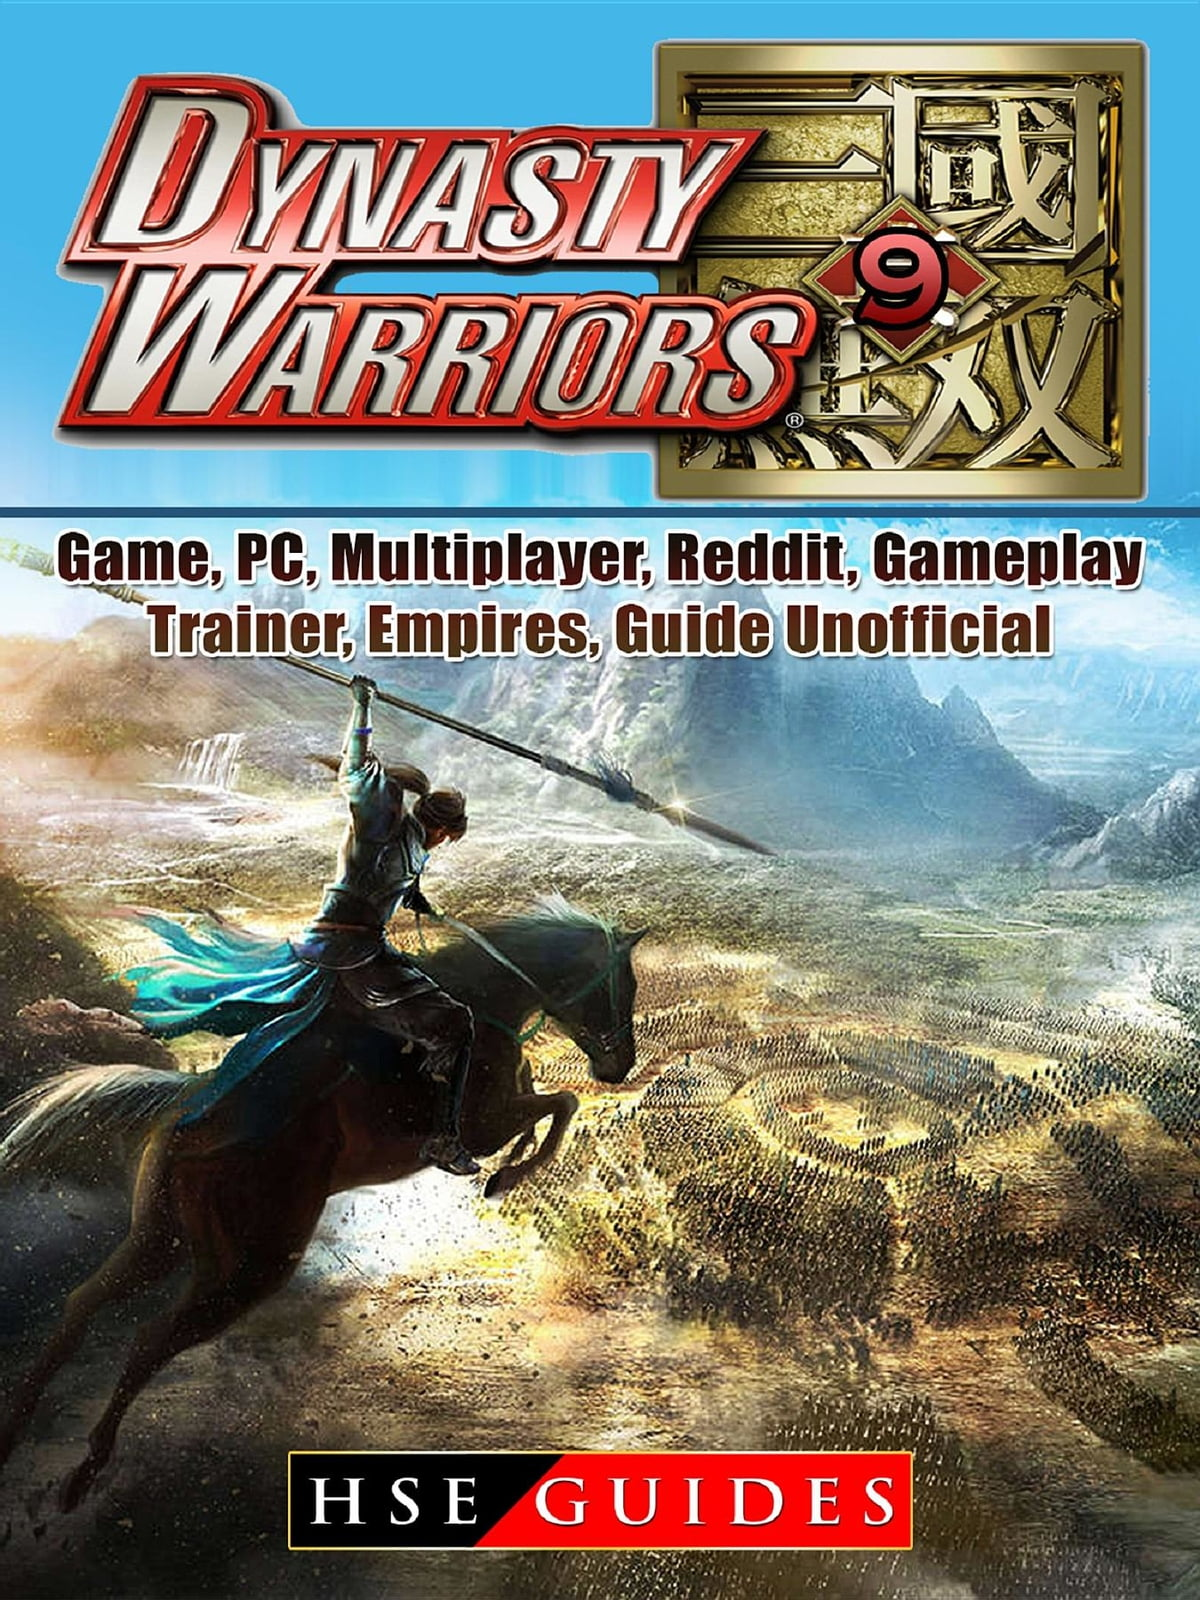 Dynasty Warriors 9 Game, PC, Multiplayer, Reddit, Gameplay, Trainer,  Empires, Guide Unofficial ebook by HSE Guides - Rakuten Kobo